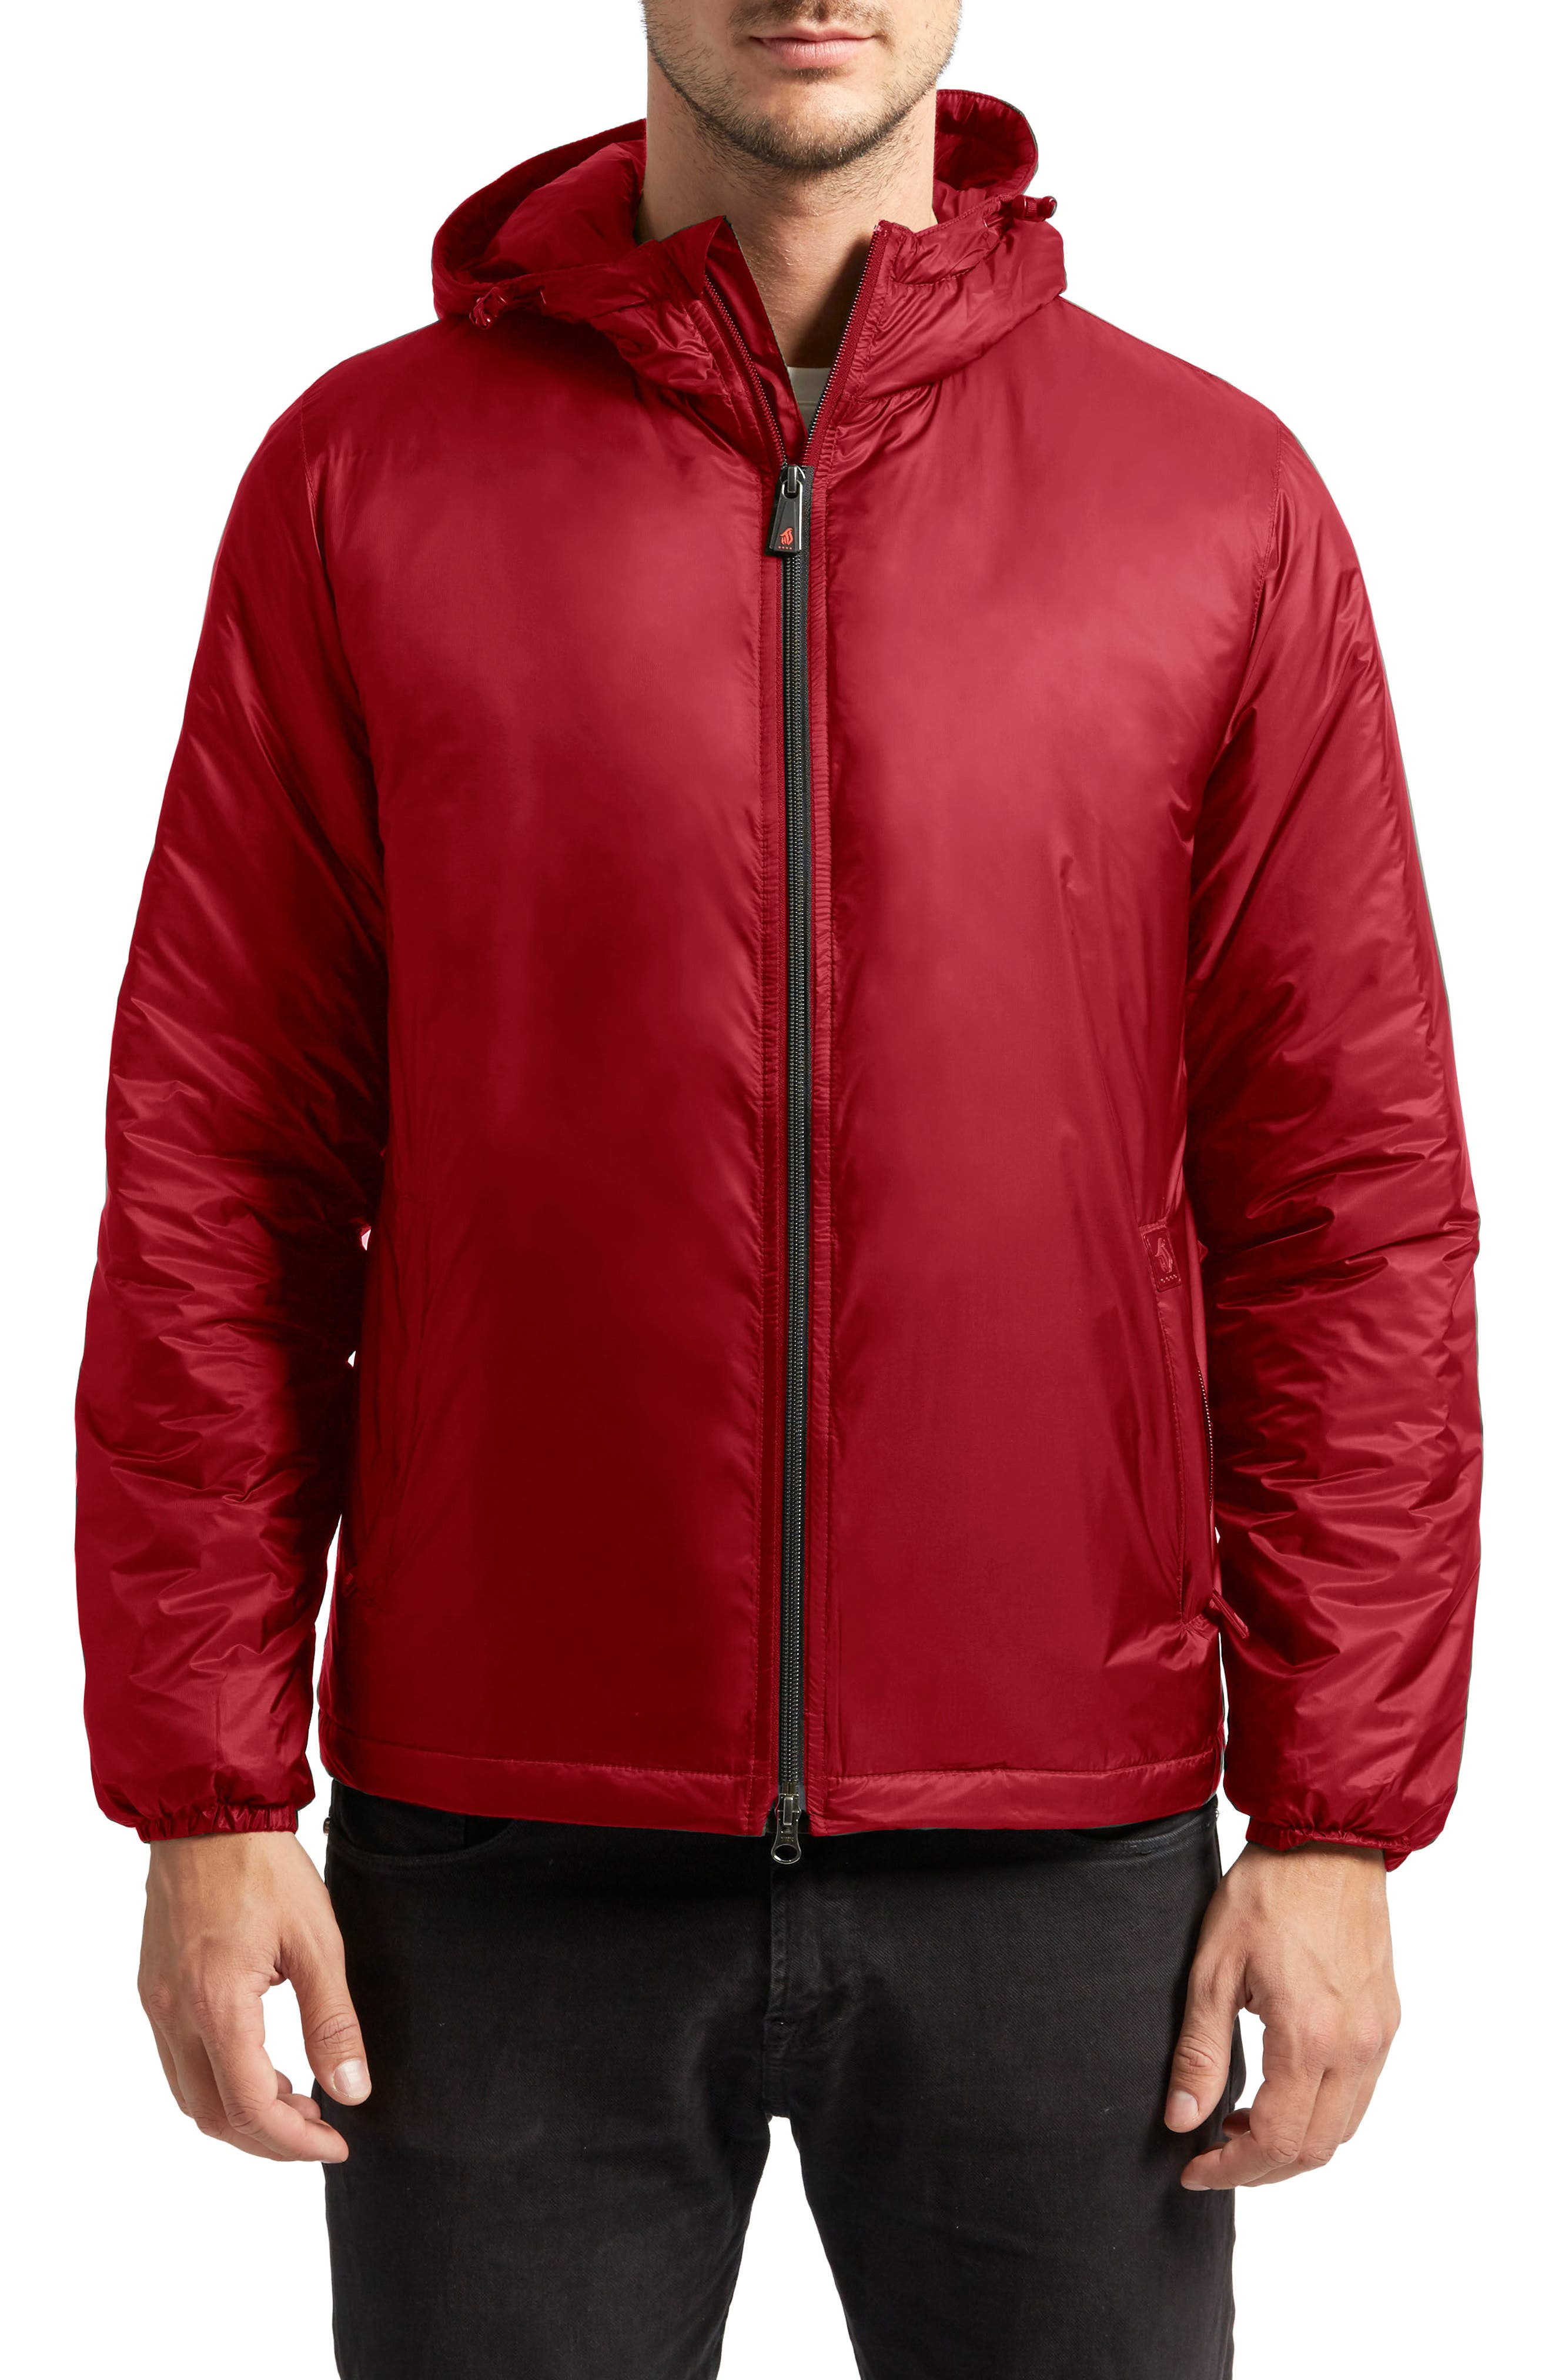 Arvada Packable Heat System Hooded Jacket,                         Main,                         color, Cardinal